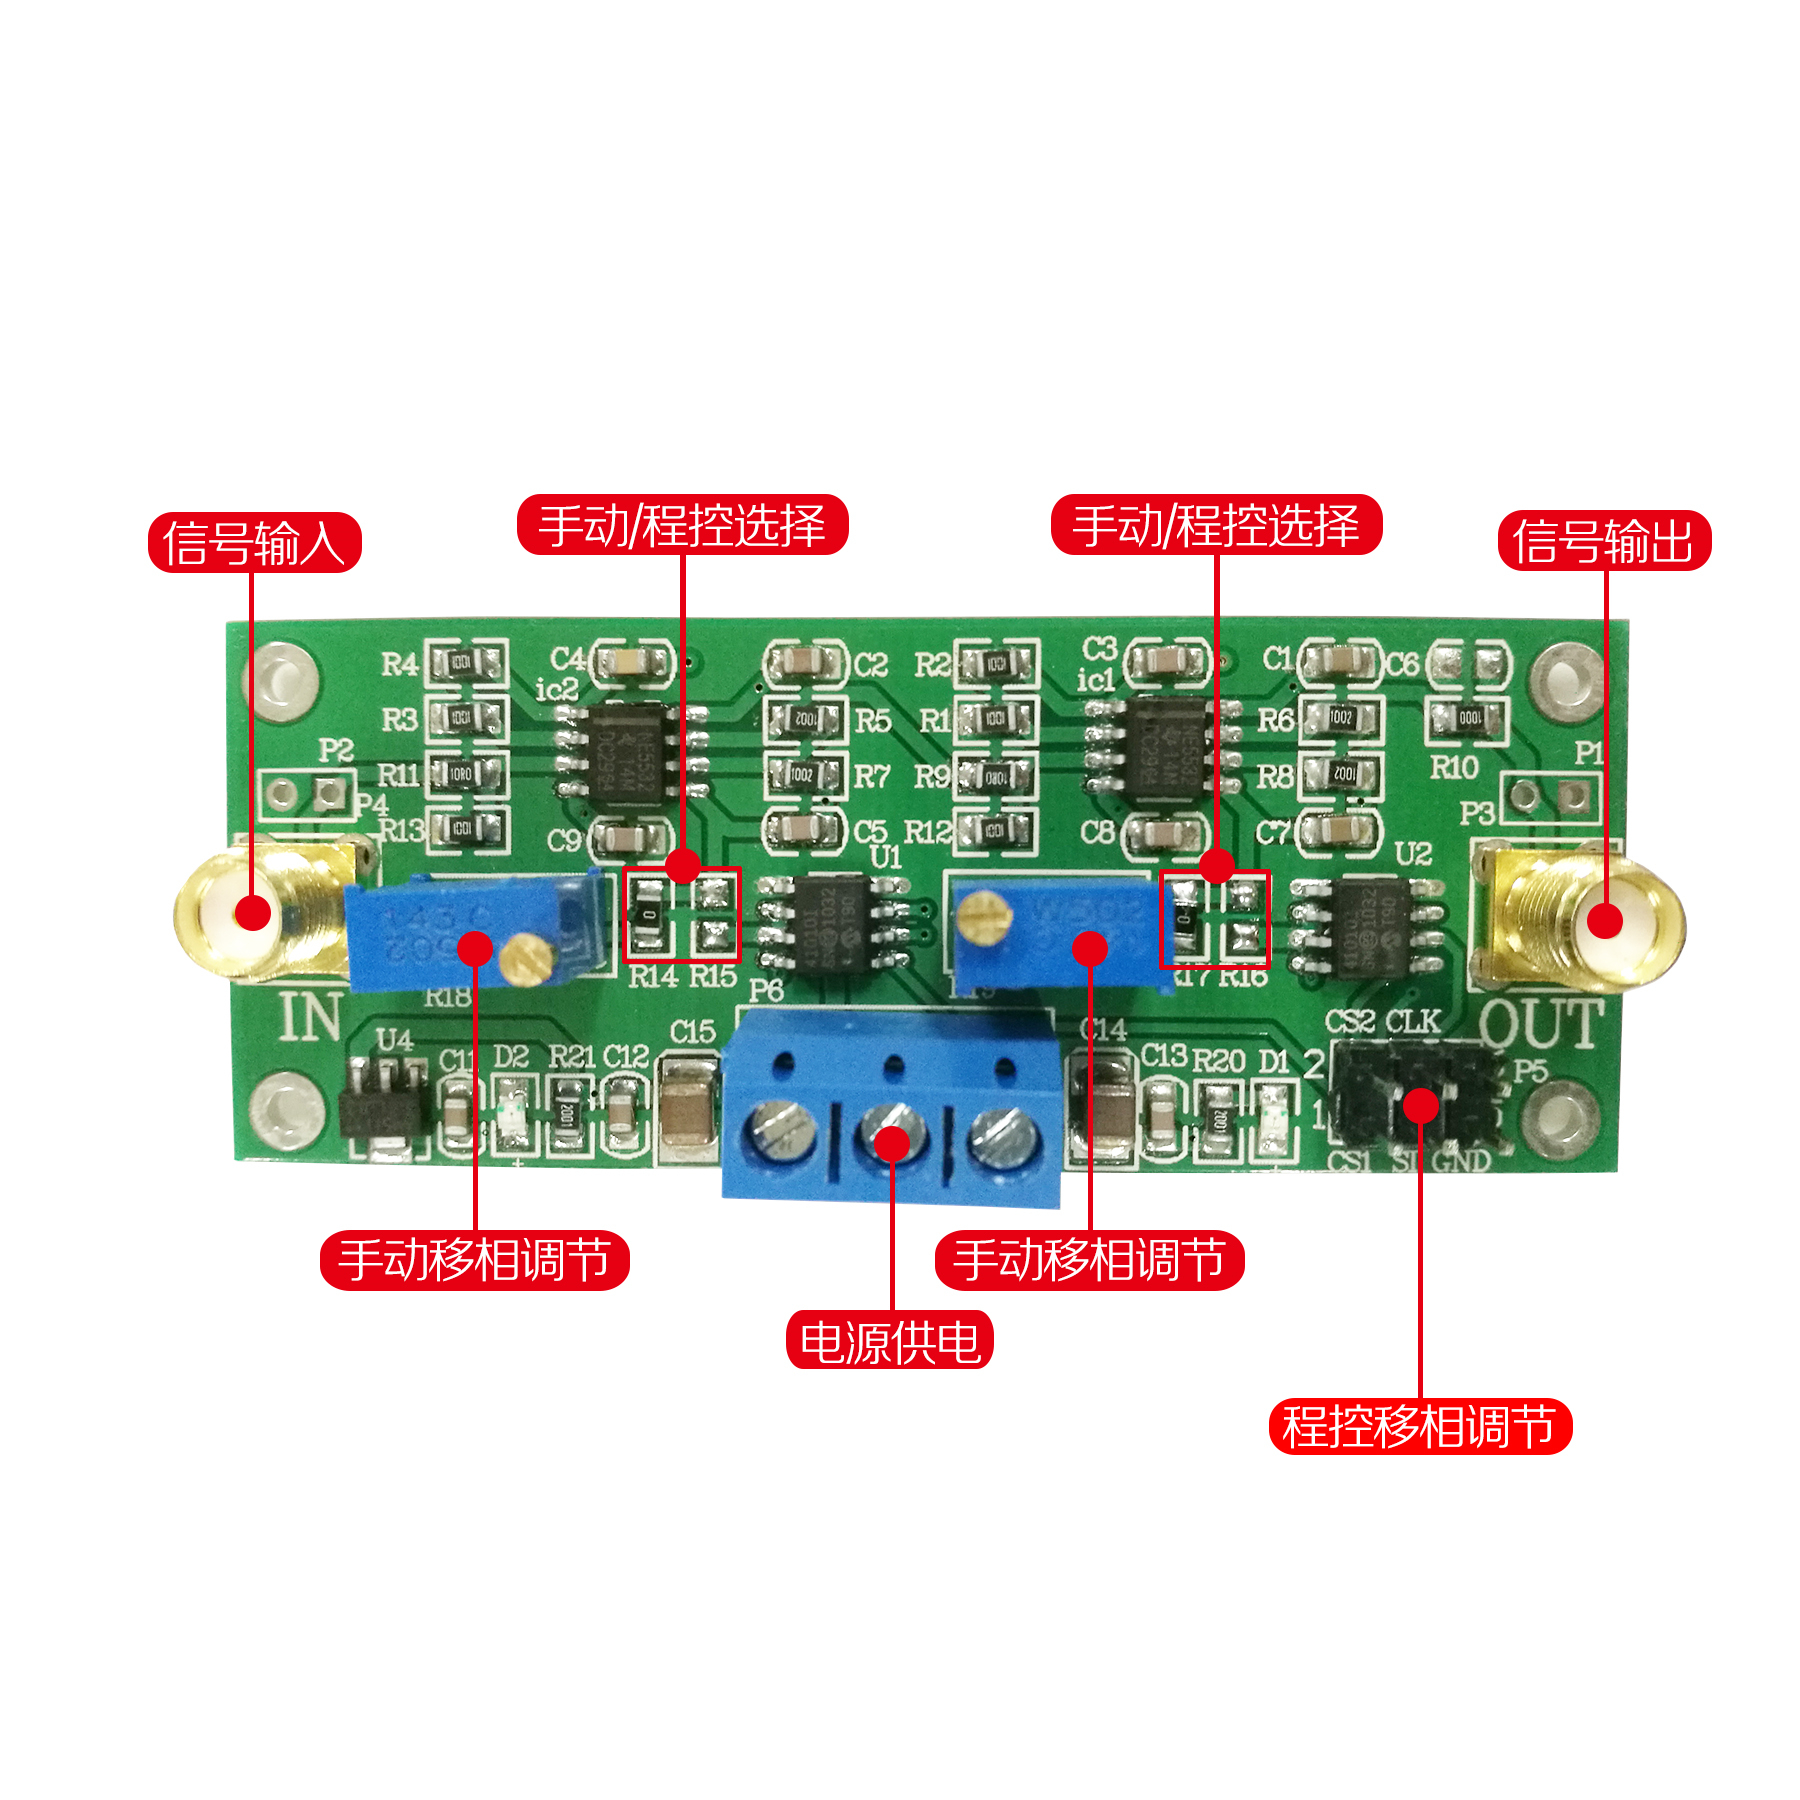 Precision Programmable Phase Shift Amplifier 0-360 Degree Adjustable MCP41010 Adjustable Phase Shifter Circuit Module Board